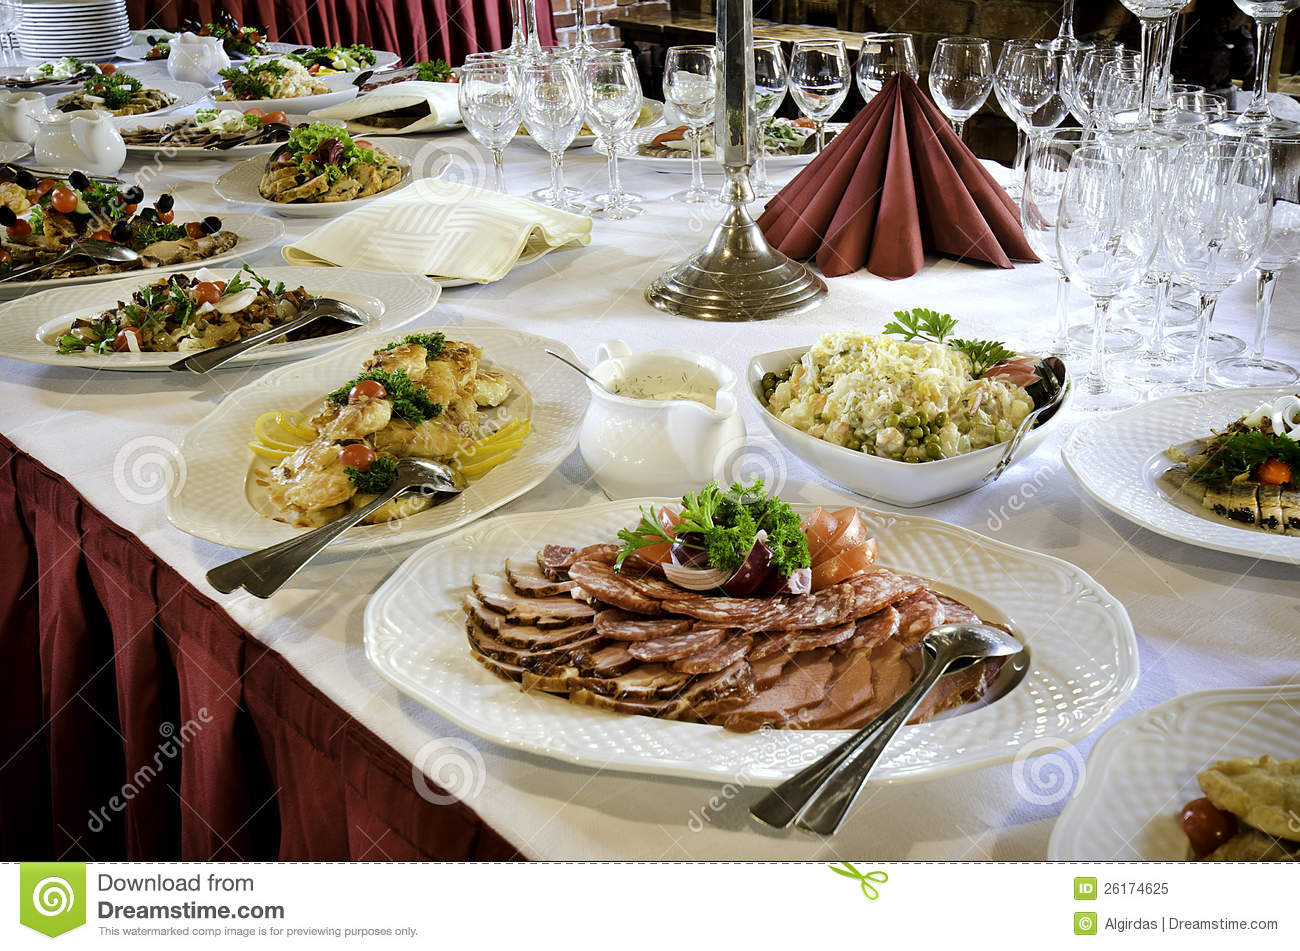 Banquet Table Food stock image. Image of cold, full, cuts - 26174625